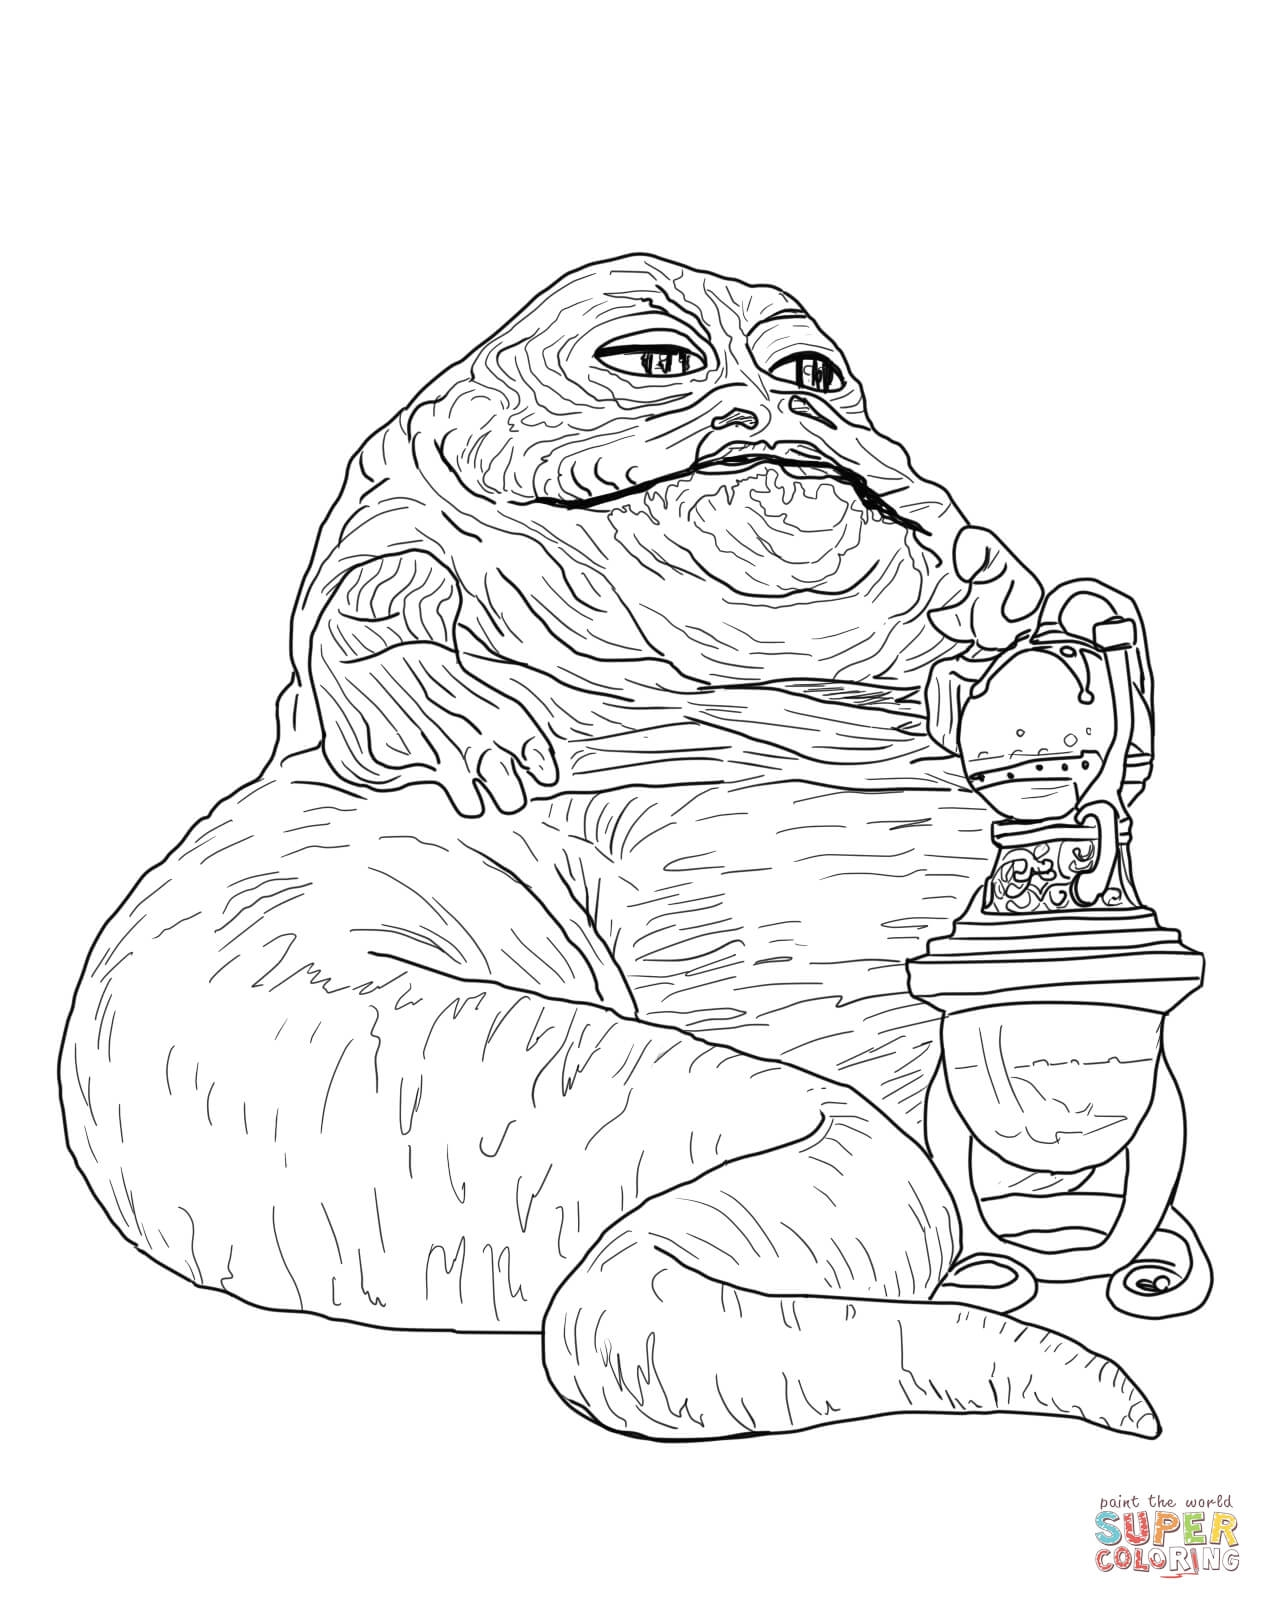 stormtrooper coloring page - jabba le hut